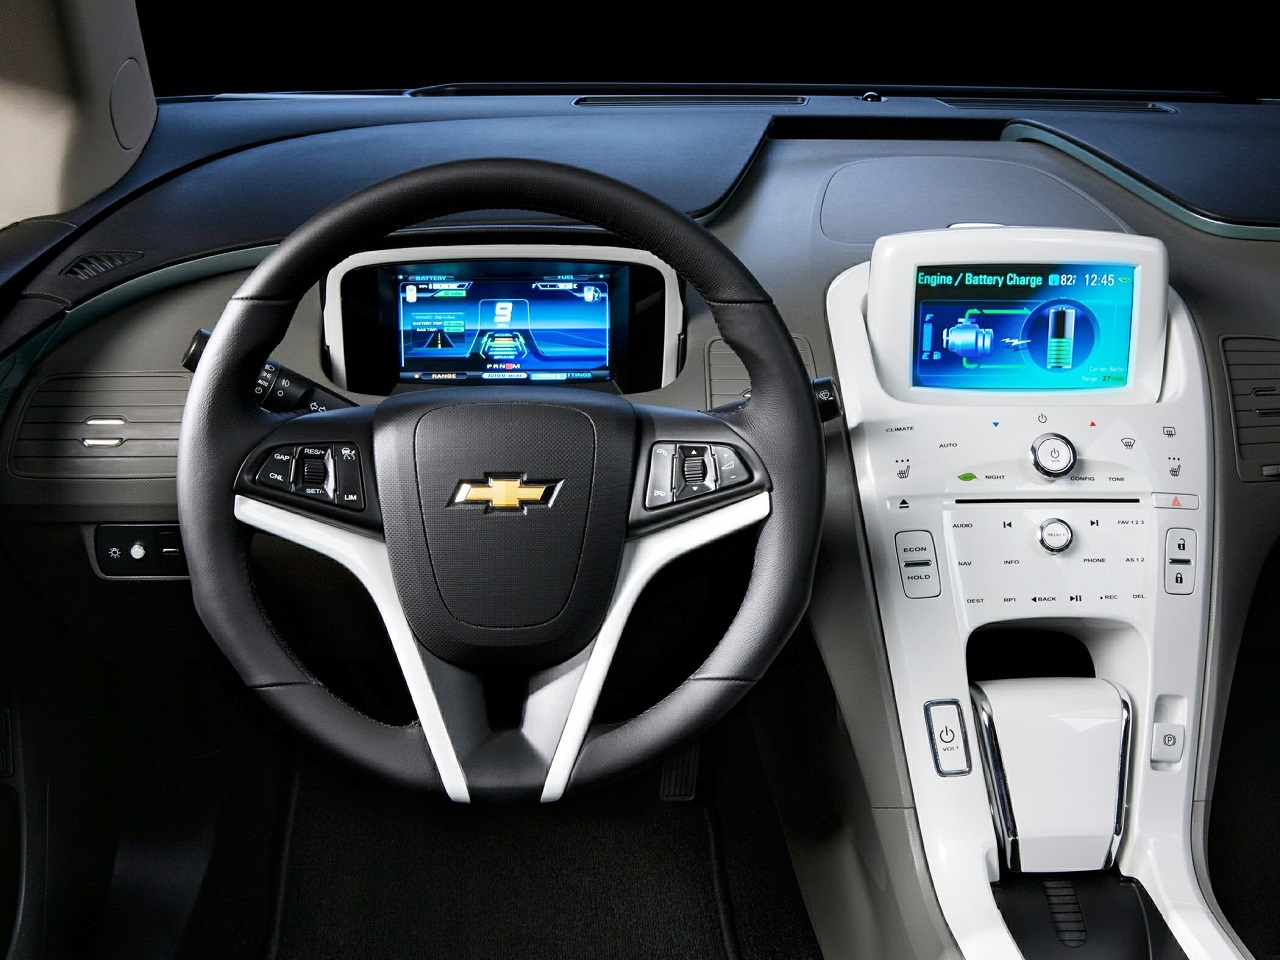 Chevy Volt Radio Wiring Diagram Library 2003 Venture 2015 Chevrolet Road Test Review